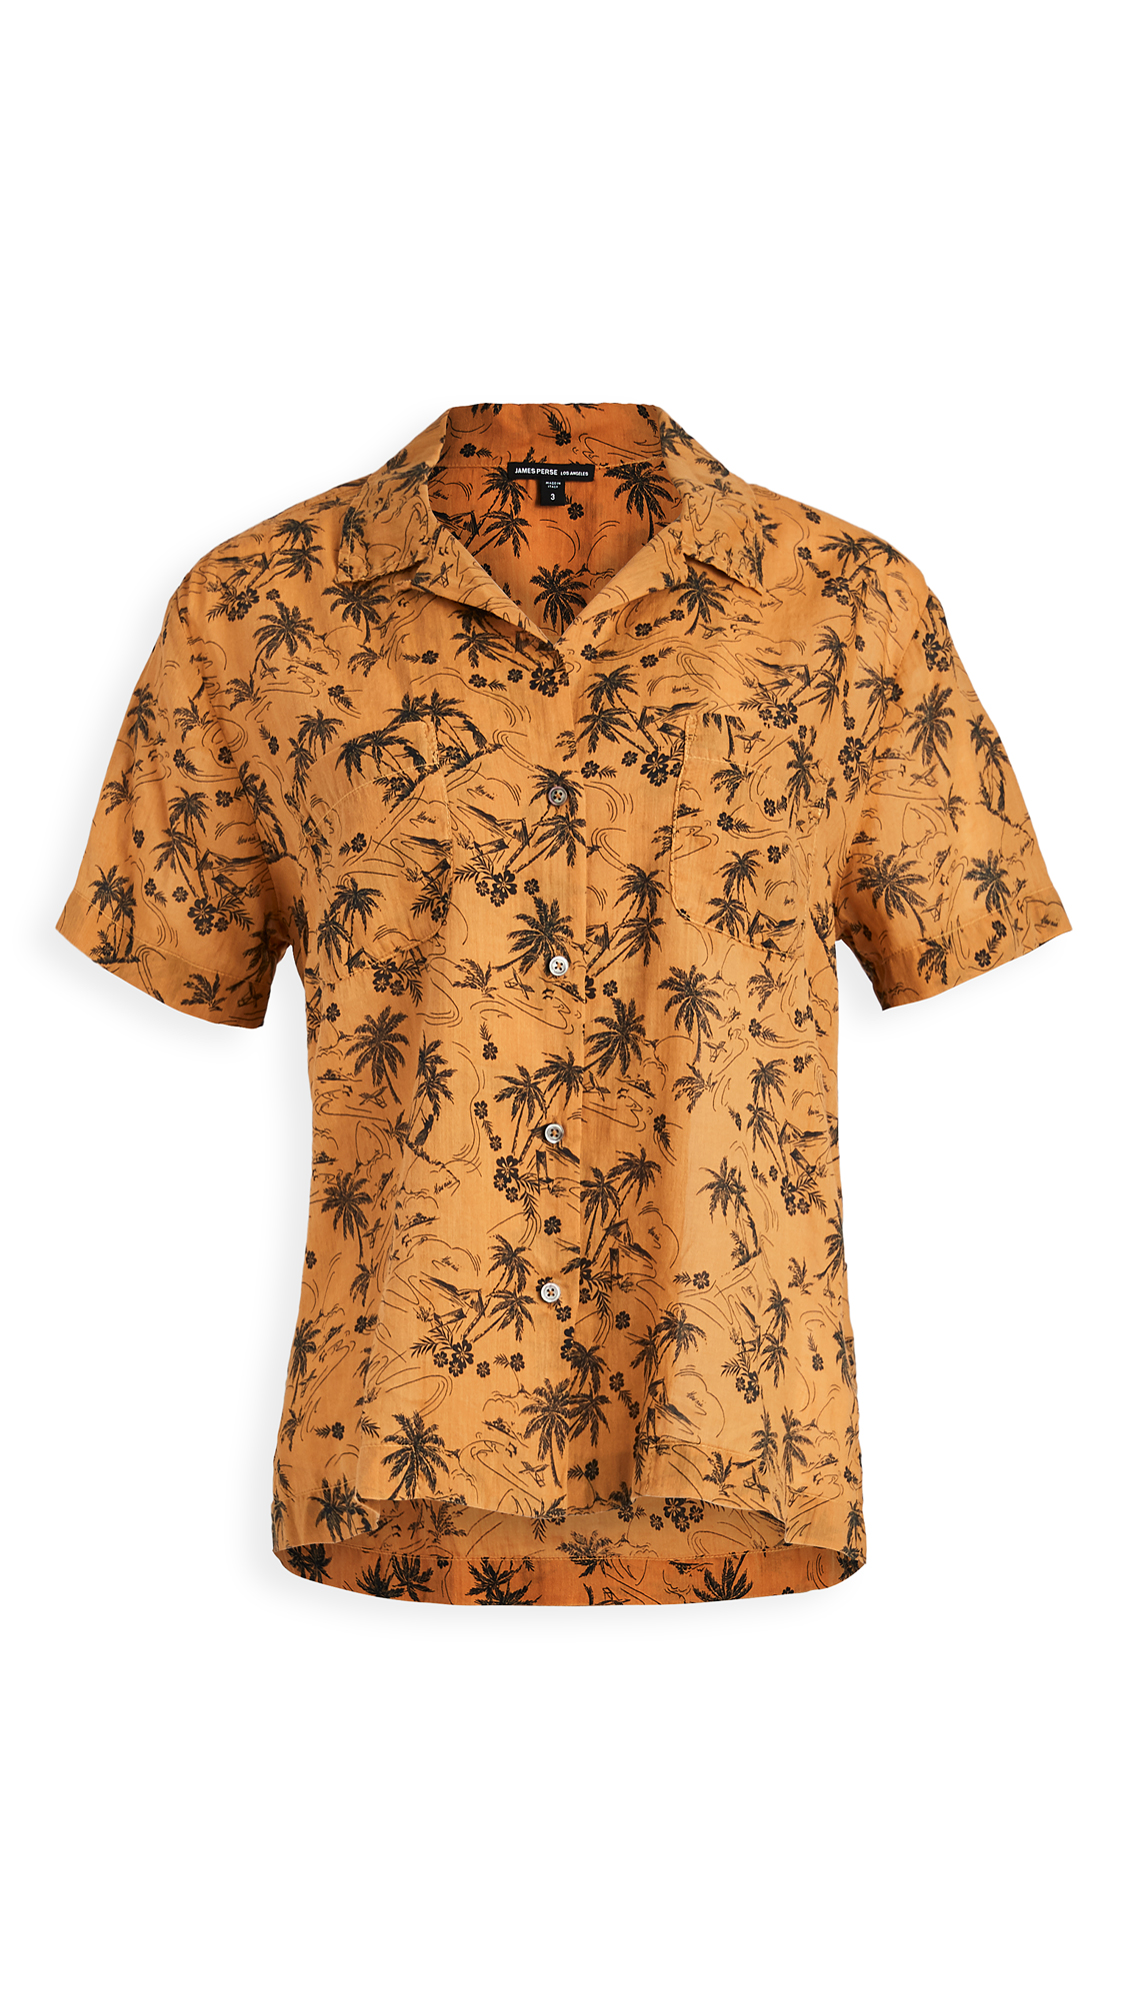 James Perse Island Print Aloha Shirt